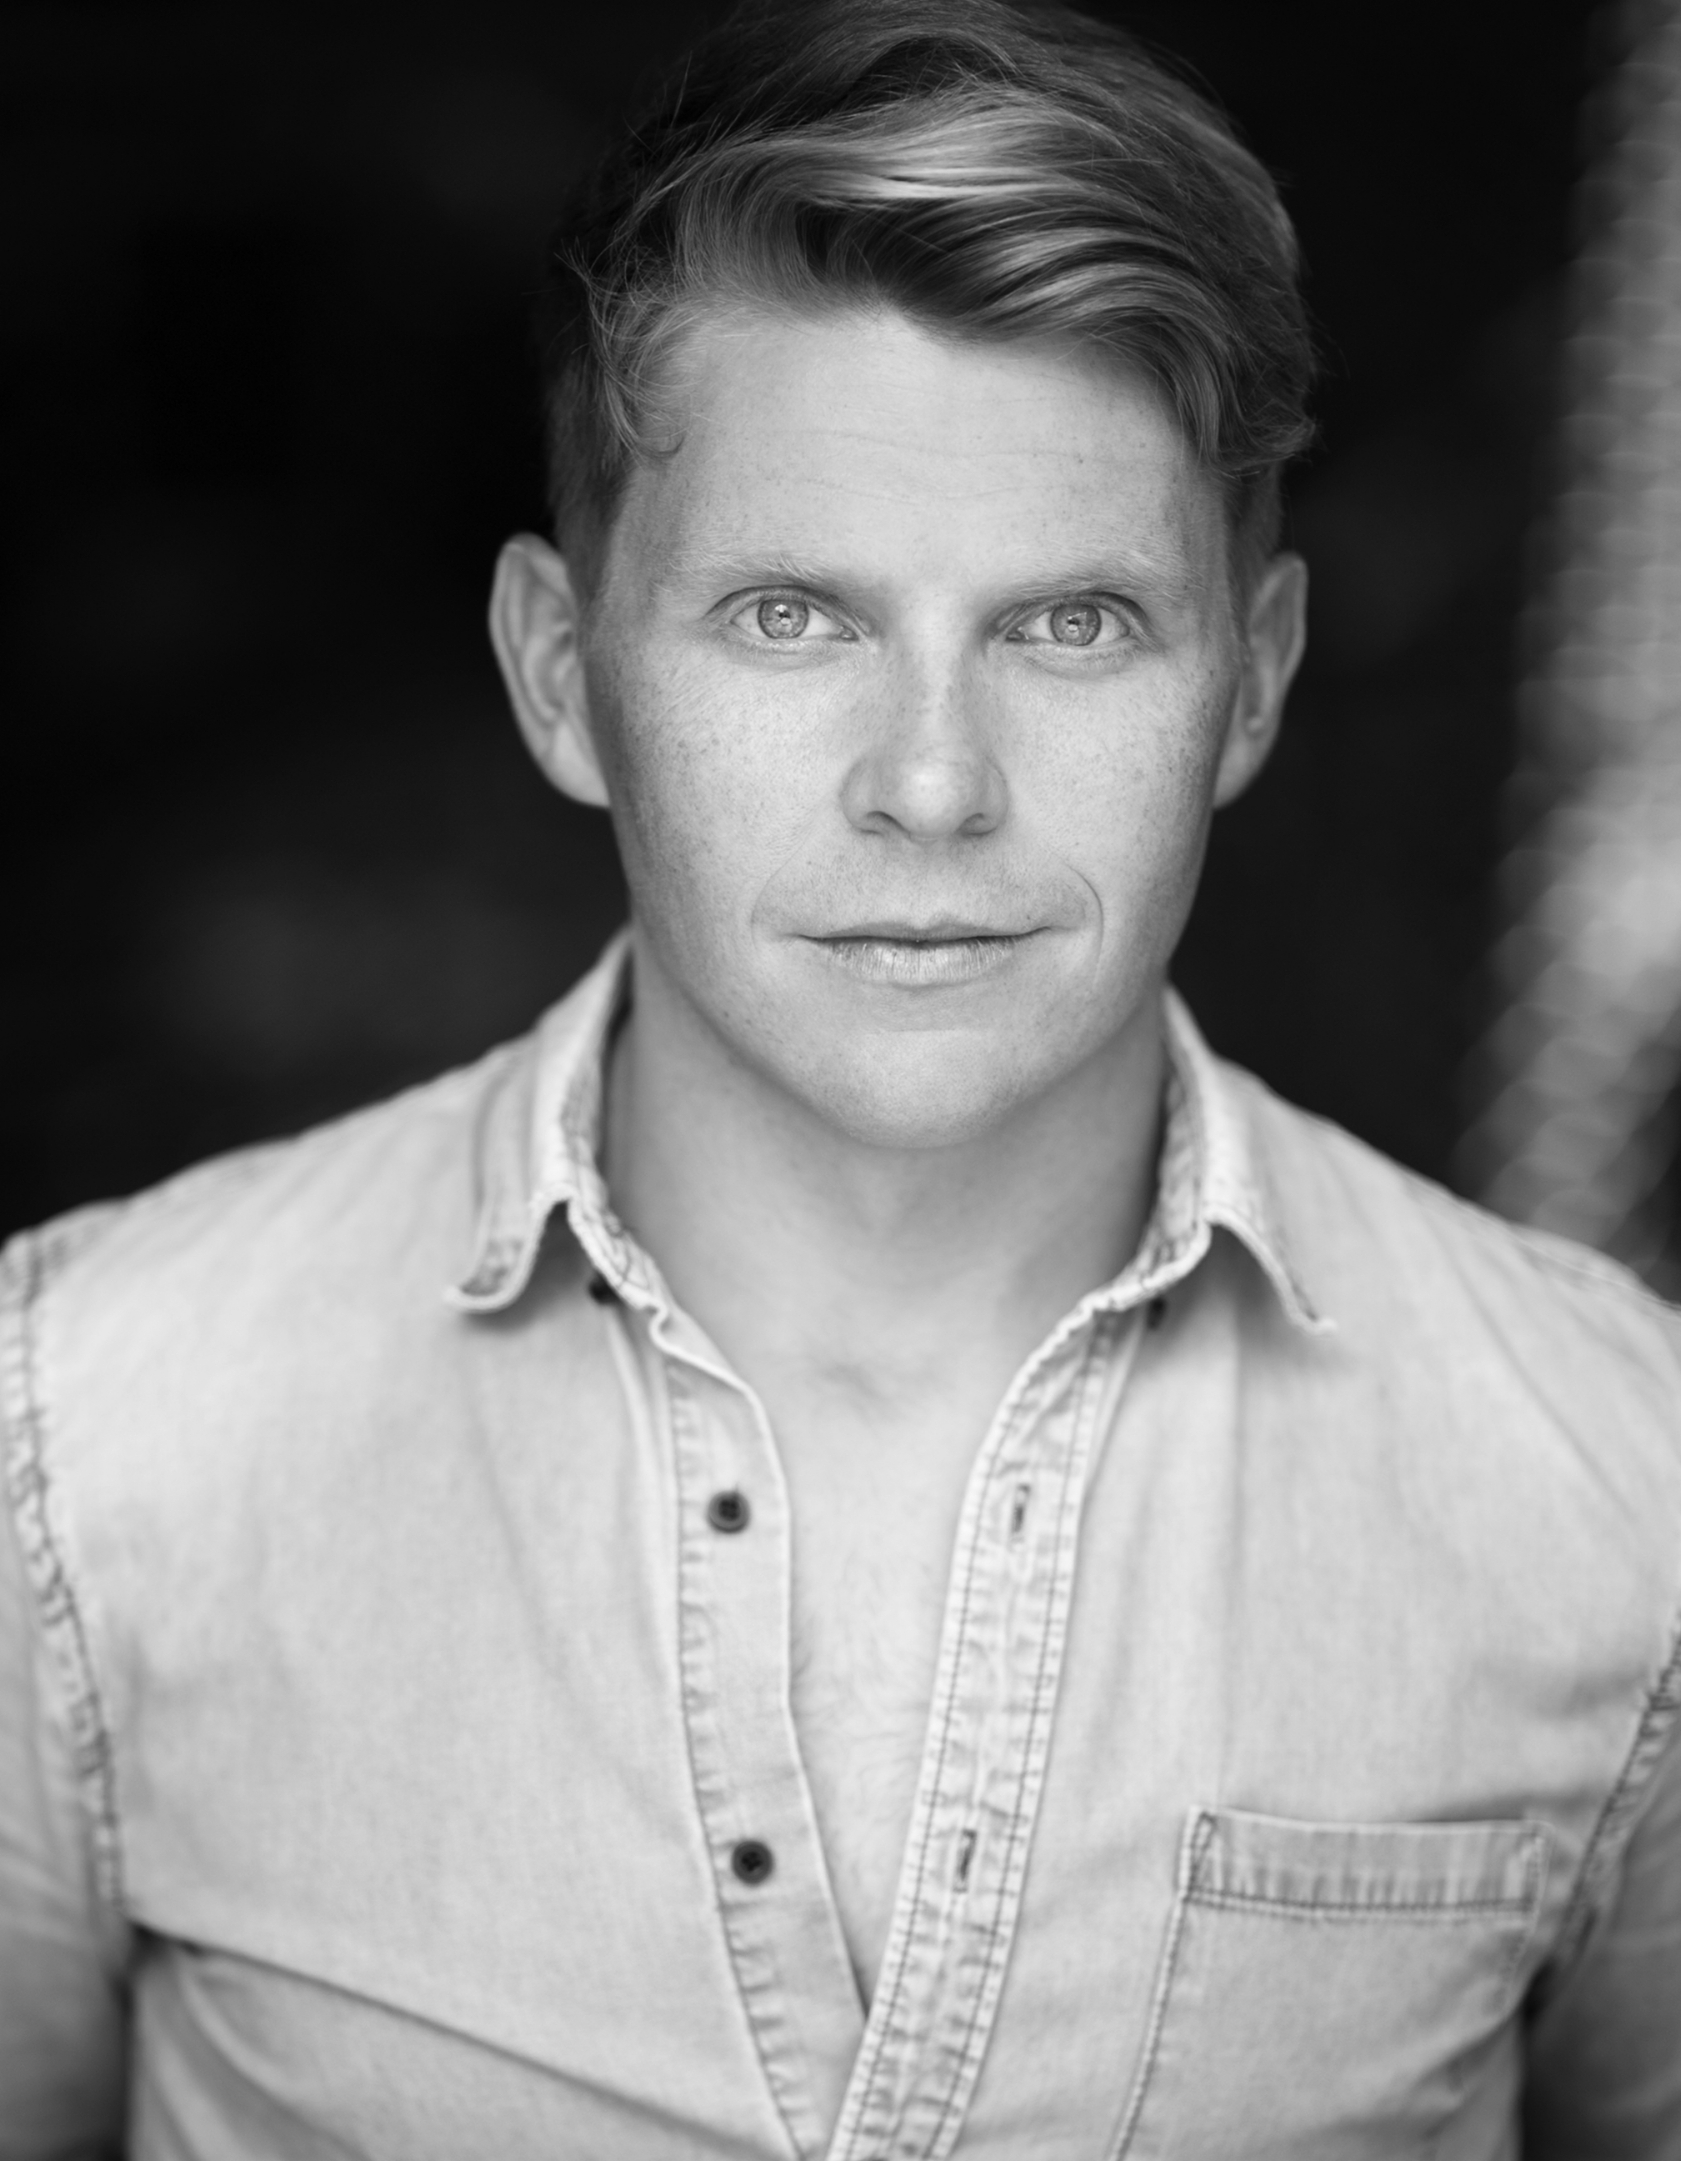 """Mark Hill - Cast - Mark Hill is a Graduate of NIDA acting BFA. Acting from a young age, Mark secured lead roles in childeren's television series the Wayne Manifesto (ABC) and Cybergirl (Channel 10).Mark was one of Bindi Irwin's Crocmen appearing on stage and screen in Australia and USA. Highlights include, The Today Show (USA) and the Macy's Thanksgiving Day Parade in New York City.Mark also performed live on stage with Michael Jackson in his widely acclaimed History world tour.Marks Stage Credits include; Muriel's Wedding """"BJORN"""" (STC), Hot Tub - Reading """"Macka"""" (STC & La Boite), This is our Youth """"Dennis"""" (Underground Broadway), Mary Poppins """"Bert U/S"""" (Disney, Cameron Macintosh), A Chorus Line """"Don"""" (TML), South Pacific """"Billis U/S"""" (Opera Australia & GFO)."""